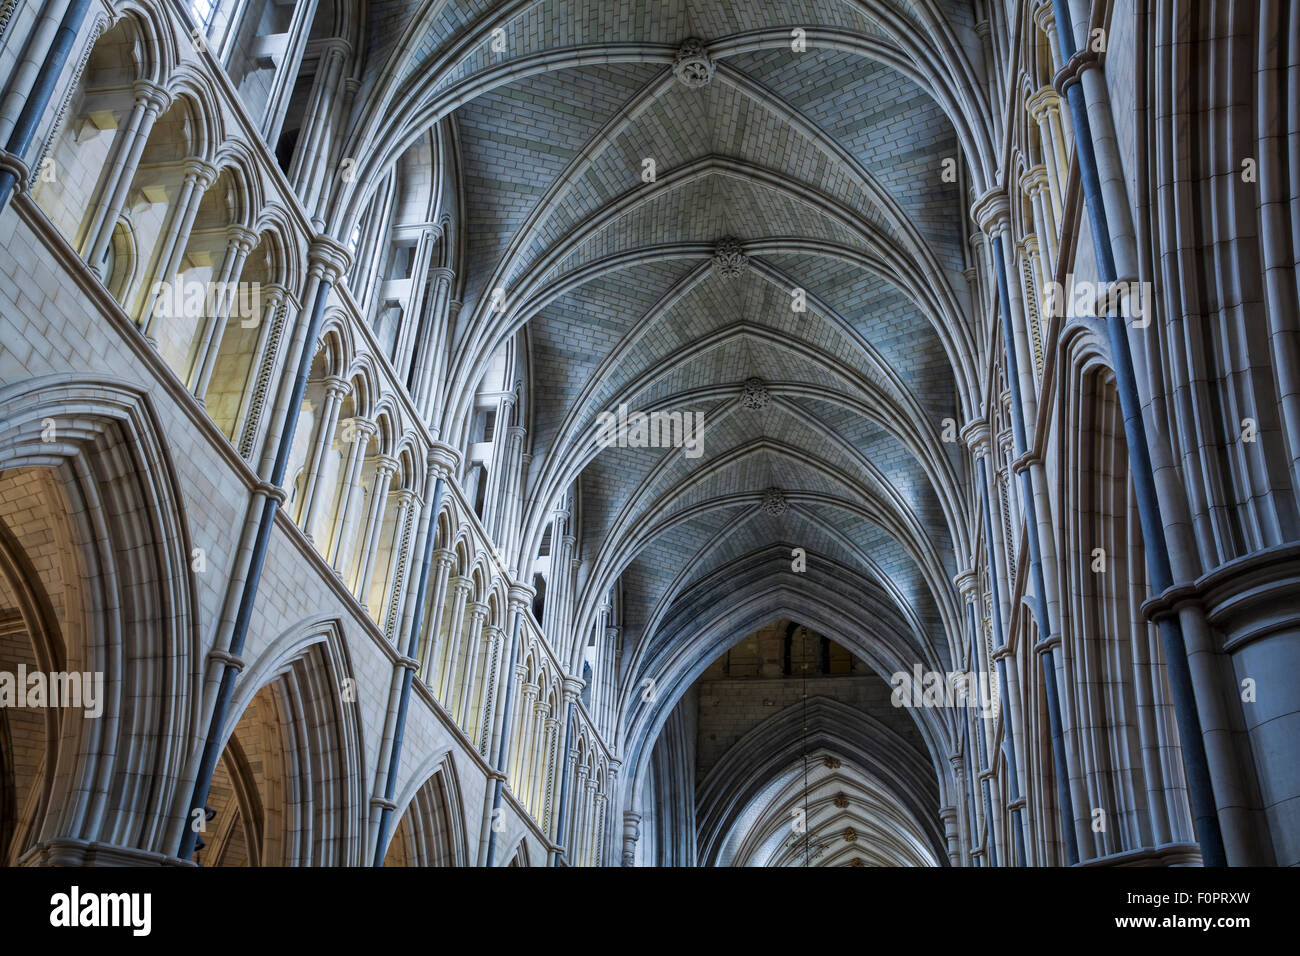 Stock Photo - Vaulted ceiling and roof bosses at Southwark Cathedral in South London near London Bridge and Borough Market : vaulted roofs - memphite.com